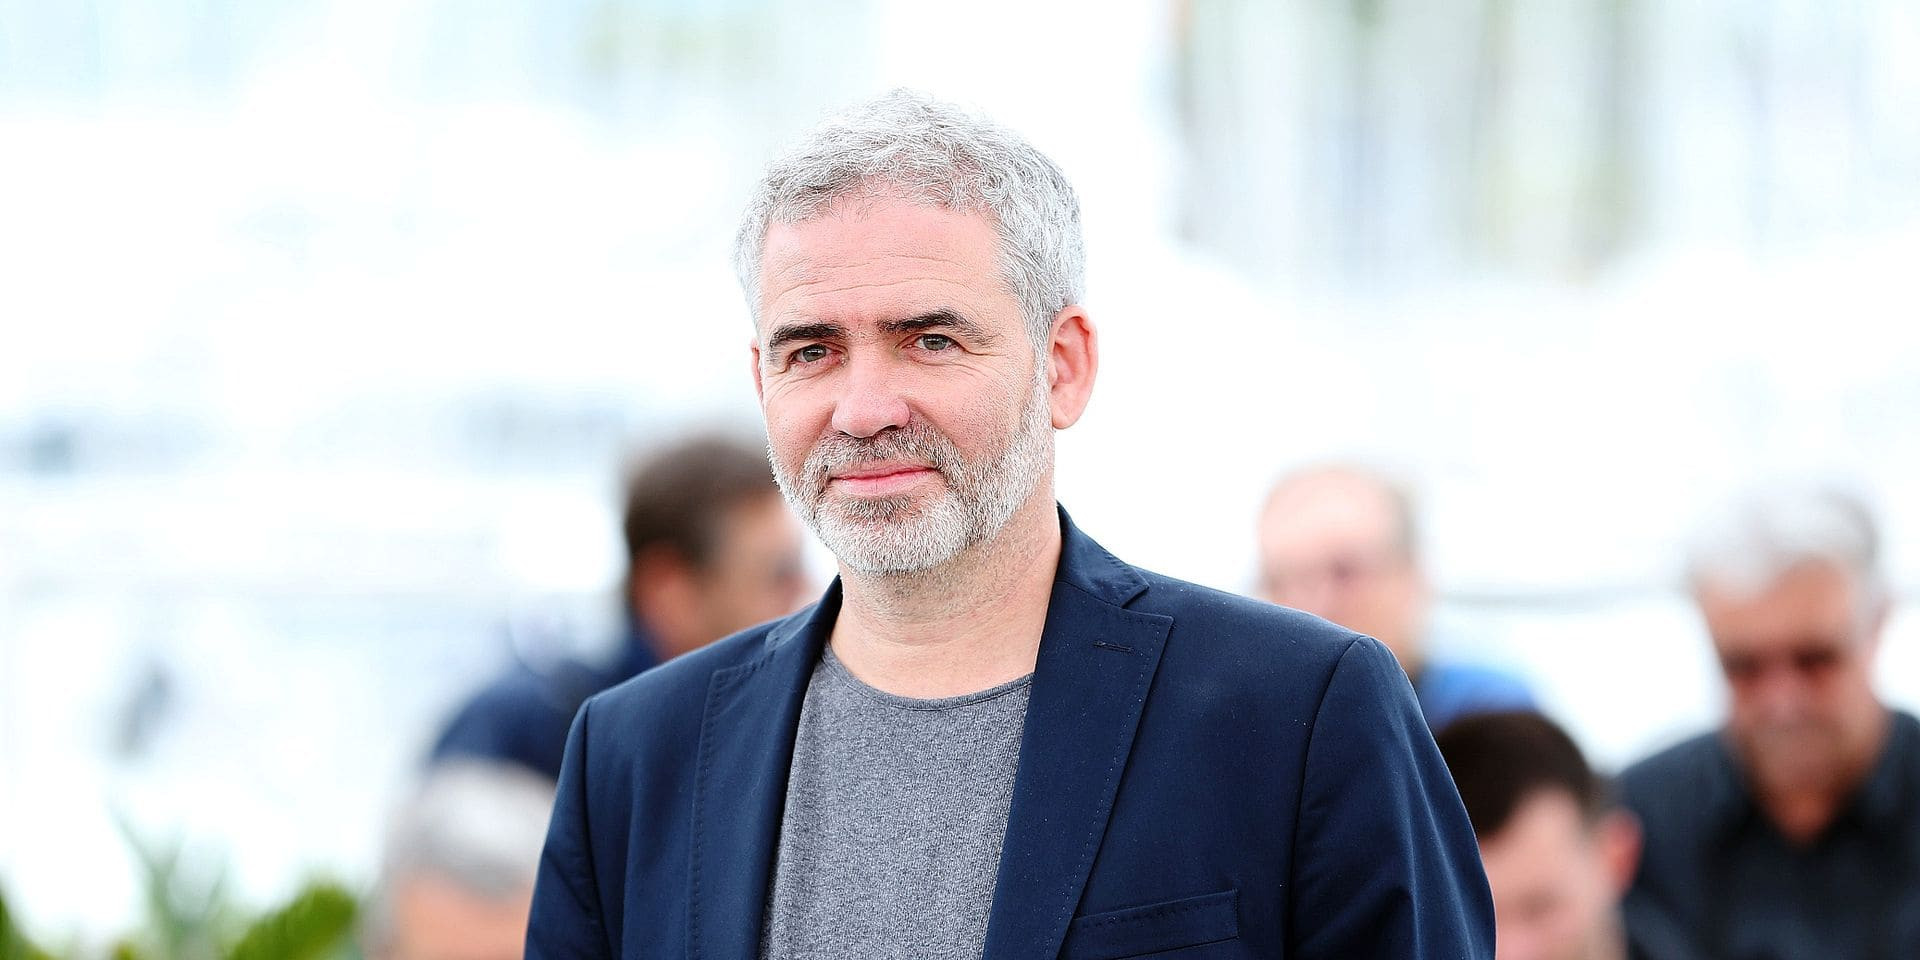 """(180516) -- CANNES, May 16, 2018 () -- Director Stephane Brize of the film """"In War (En Guerre)"""" poses during a photocall of the 71st Cannes International Film Festival in Cannes, France on May 16, 2018. The 71st Cannes International Film Festival is held from May 8 to May 19. (/Luo Huanhuan) (zf) Reporters / Photoshot"""